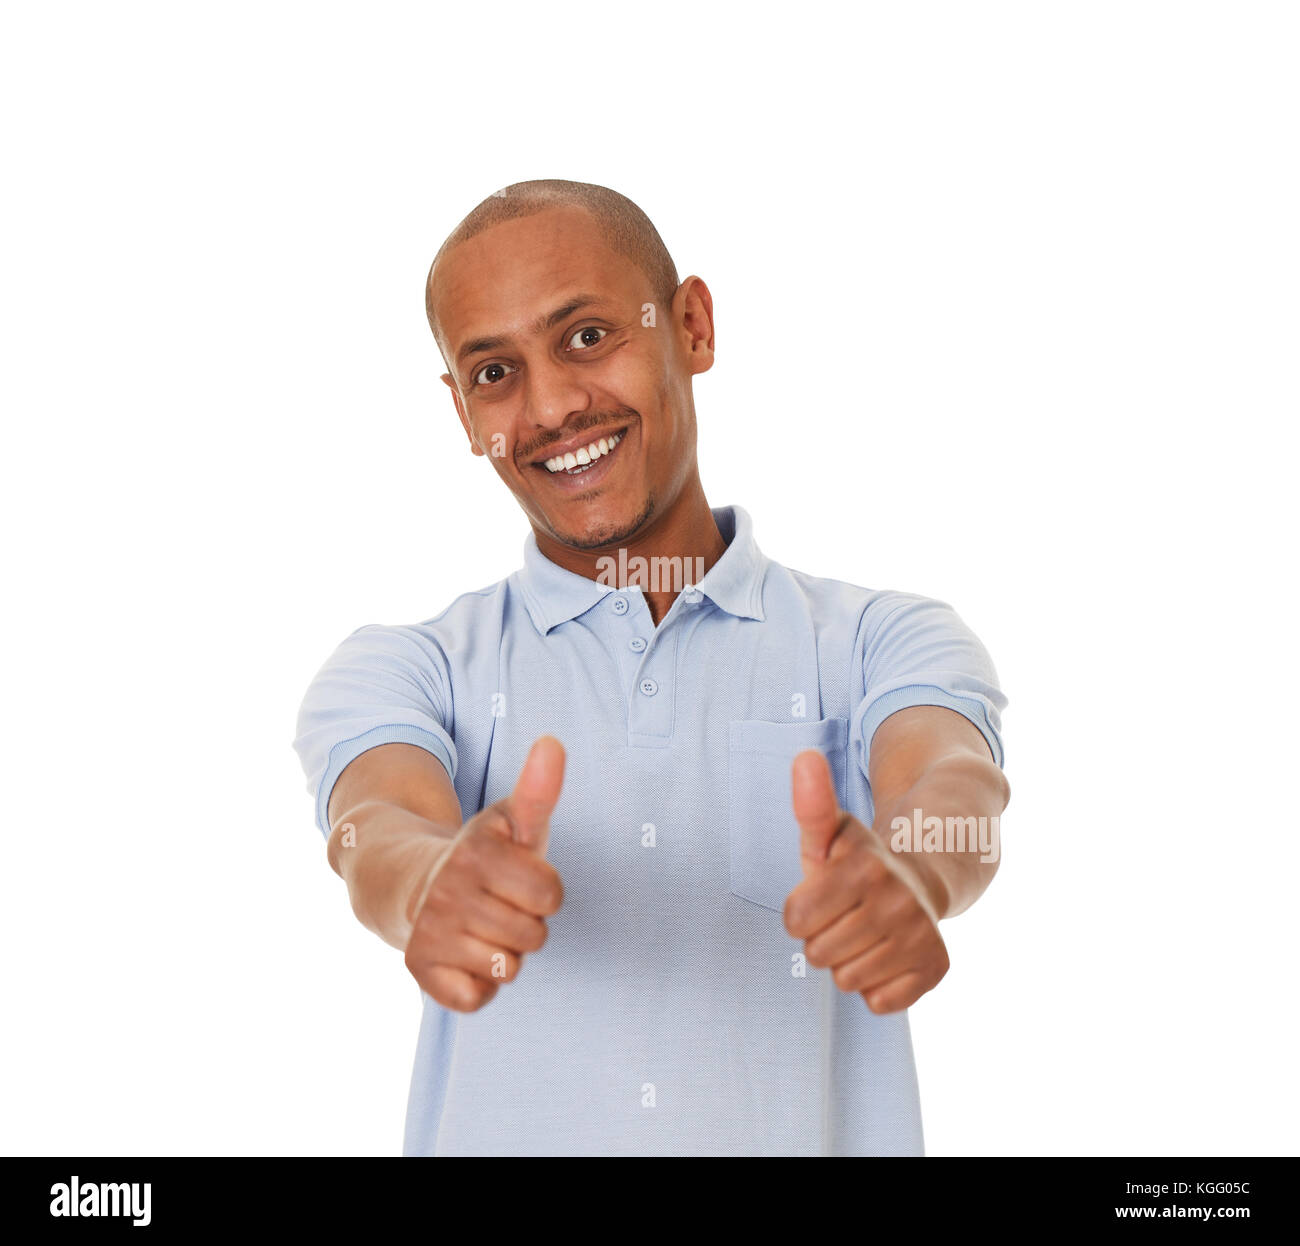 African-American young man showing thumbs up. - Stock Image